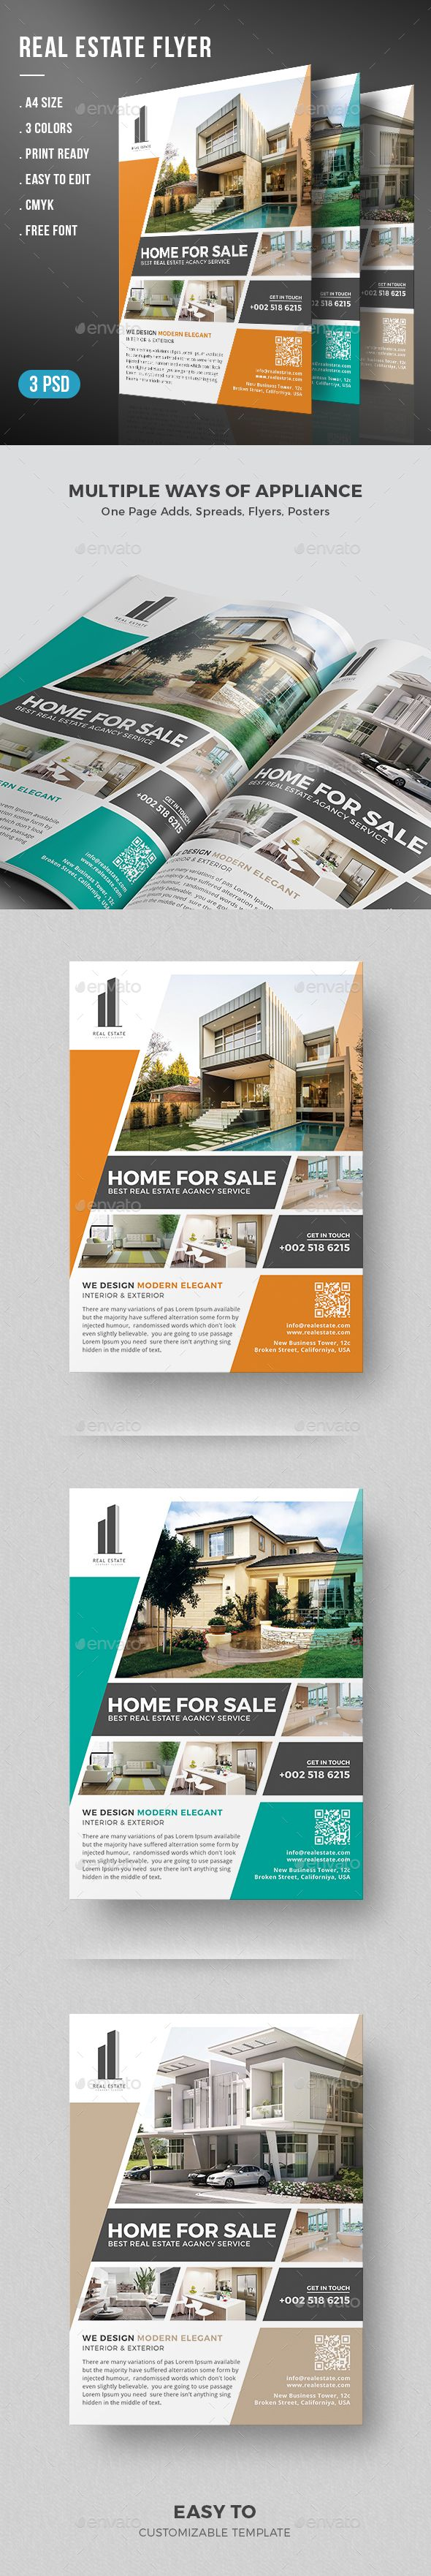 real estate flyer template the flyer flyer template and flyers real estate flyer